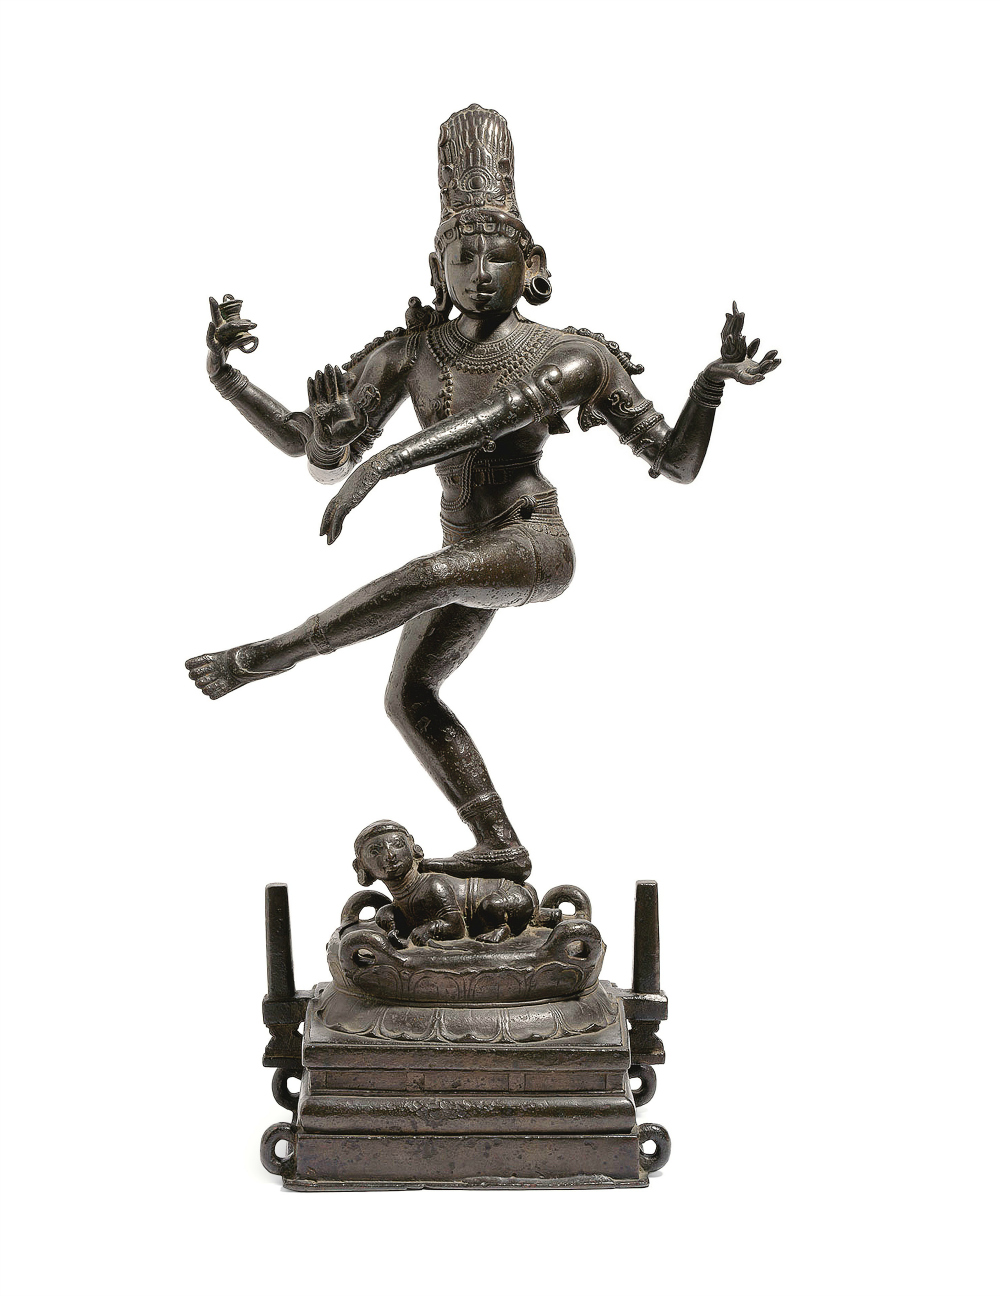 An early Chola Bronze figure of Siva